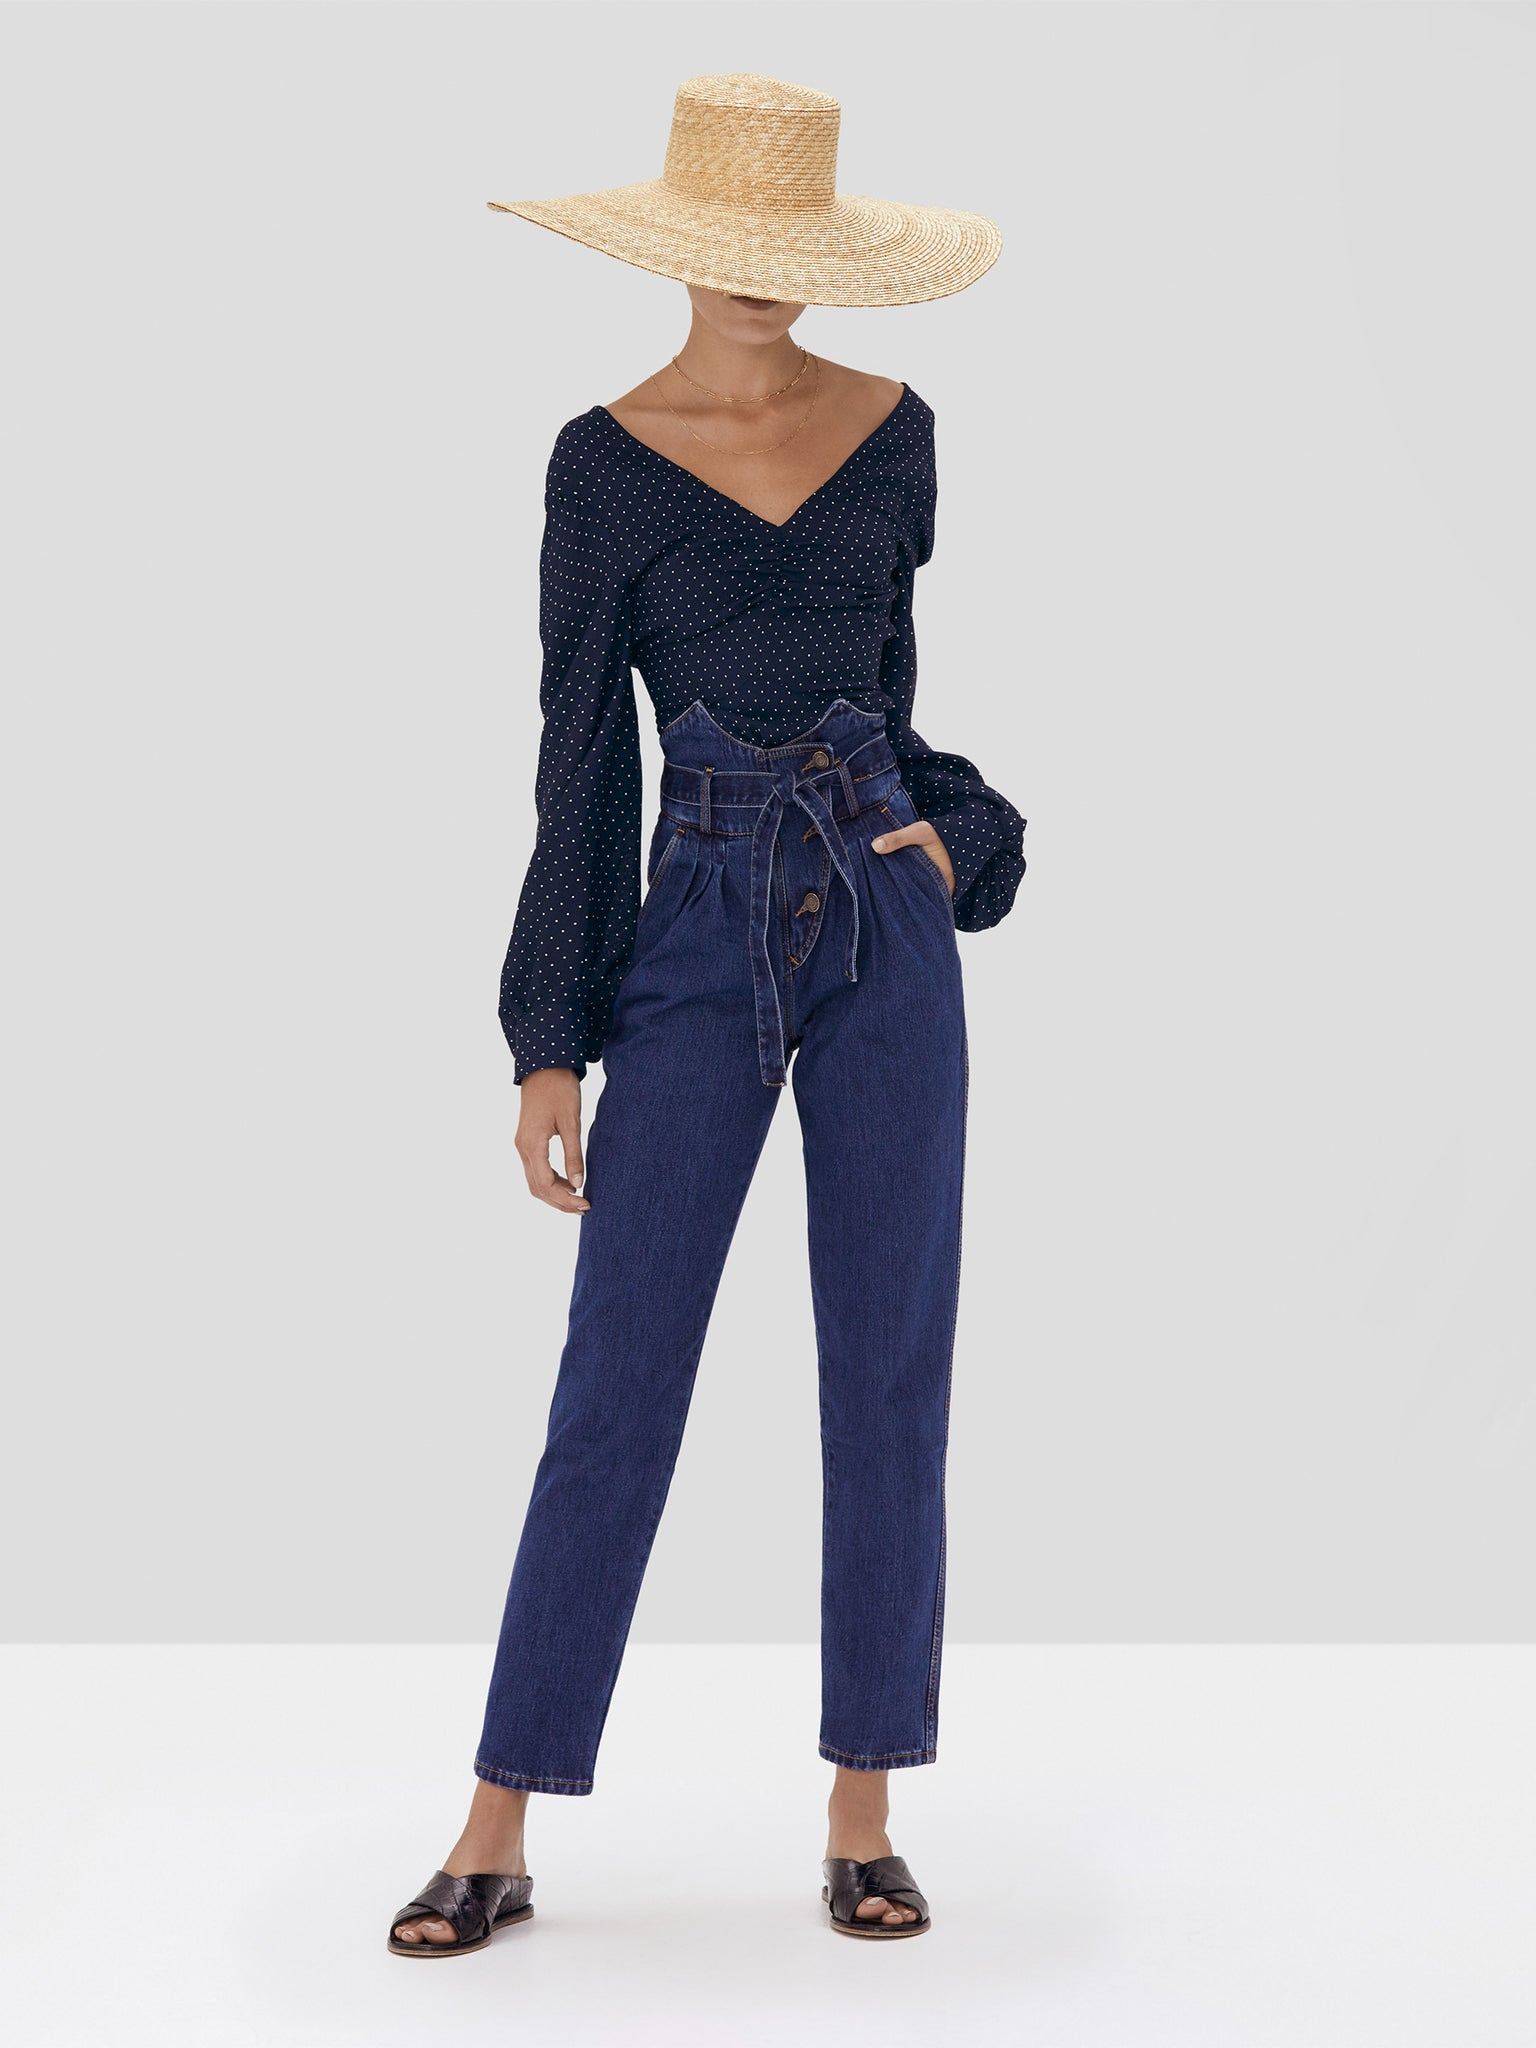 Alexis Avani Top in Navy Dot Linen from the Spring Summer 2020 Collection